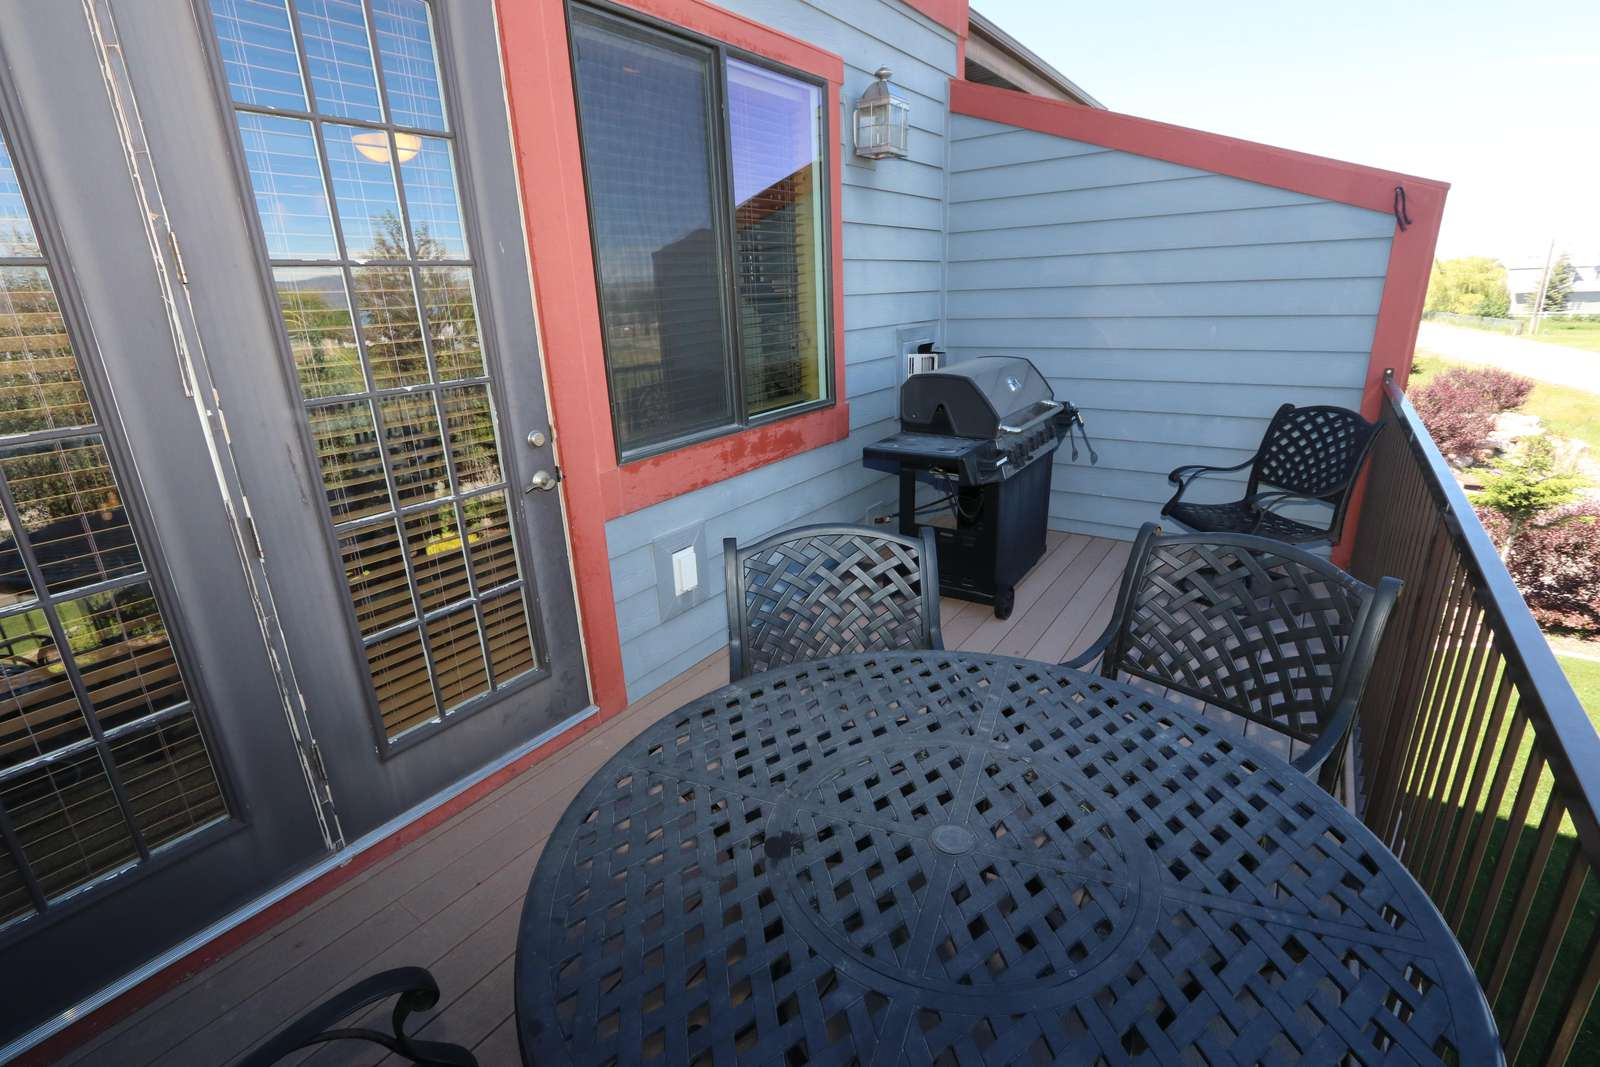 Deck with grill and furniture